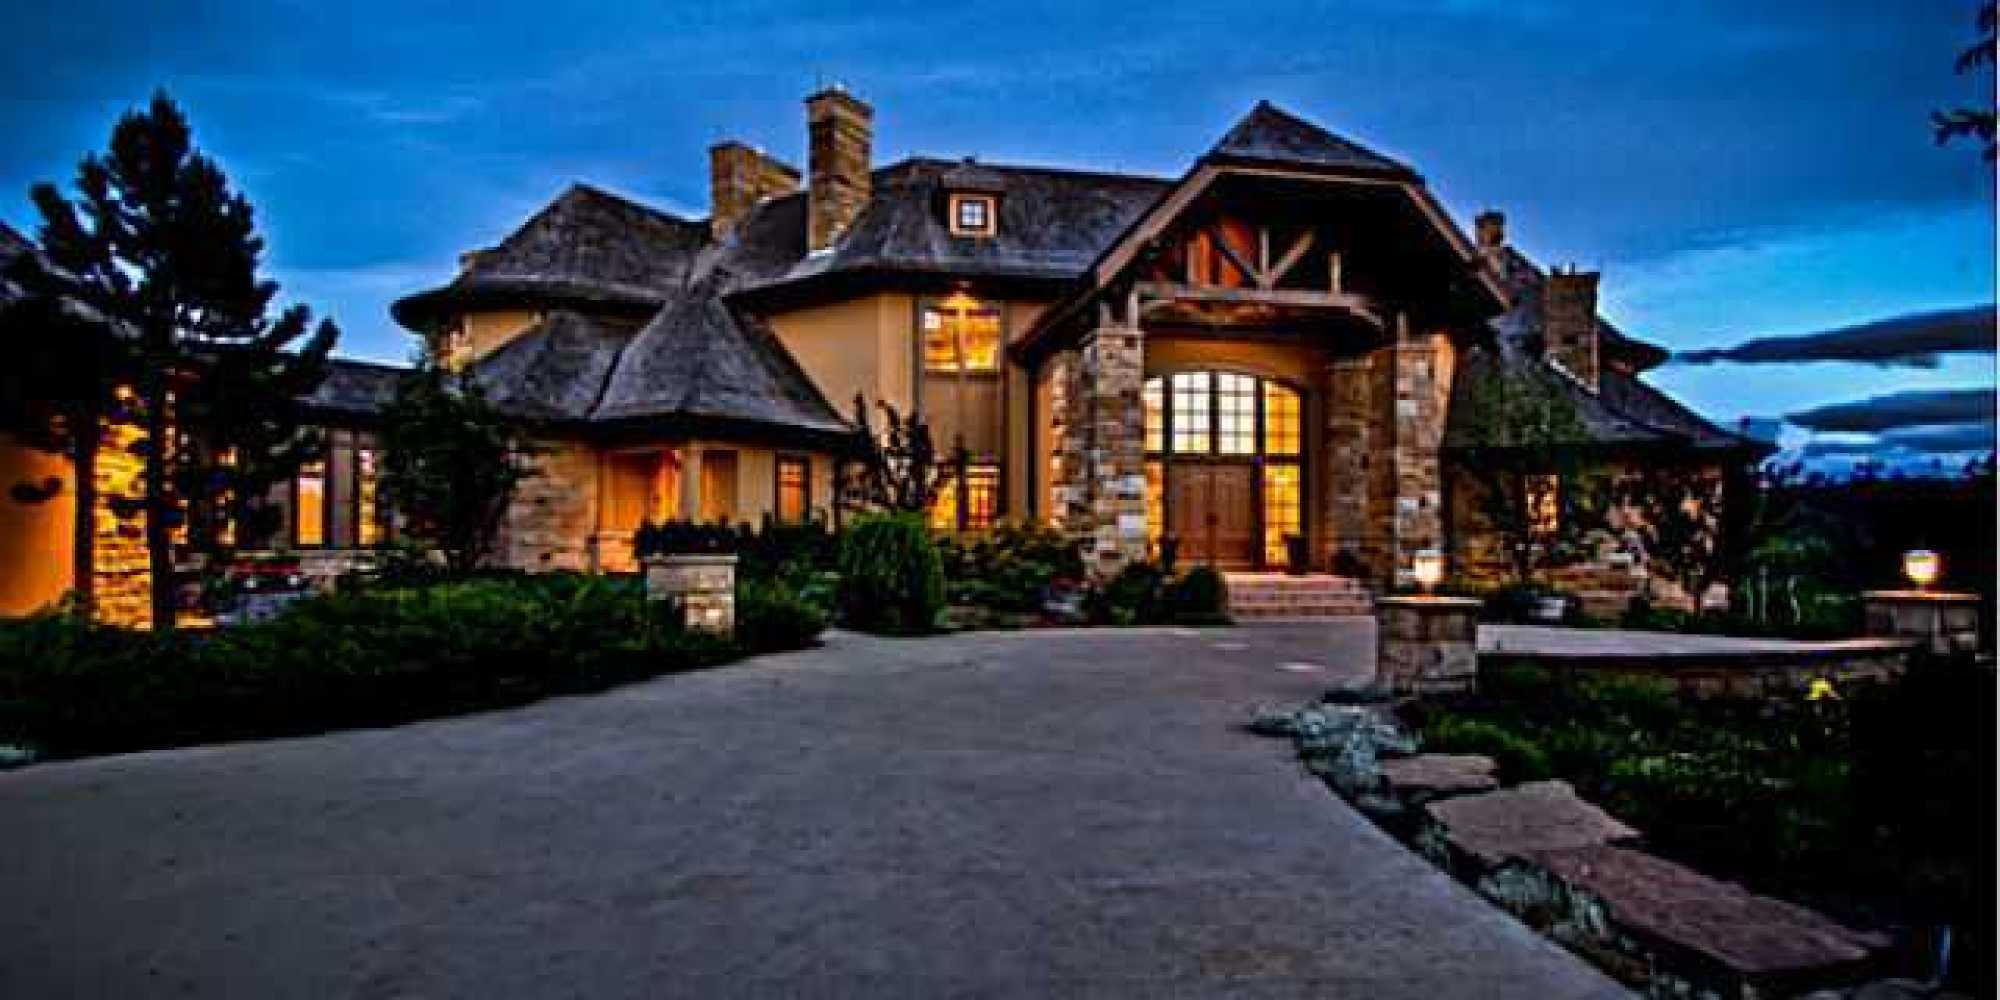 Alberta 39 s most expensive homes for sale the top 3 photos for Top beautiful house